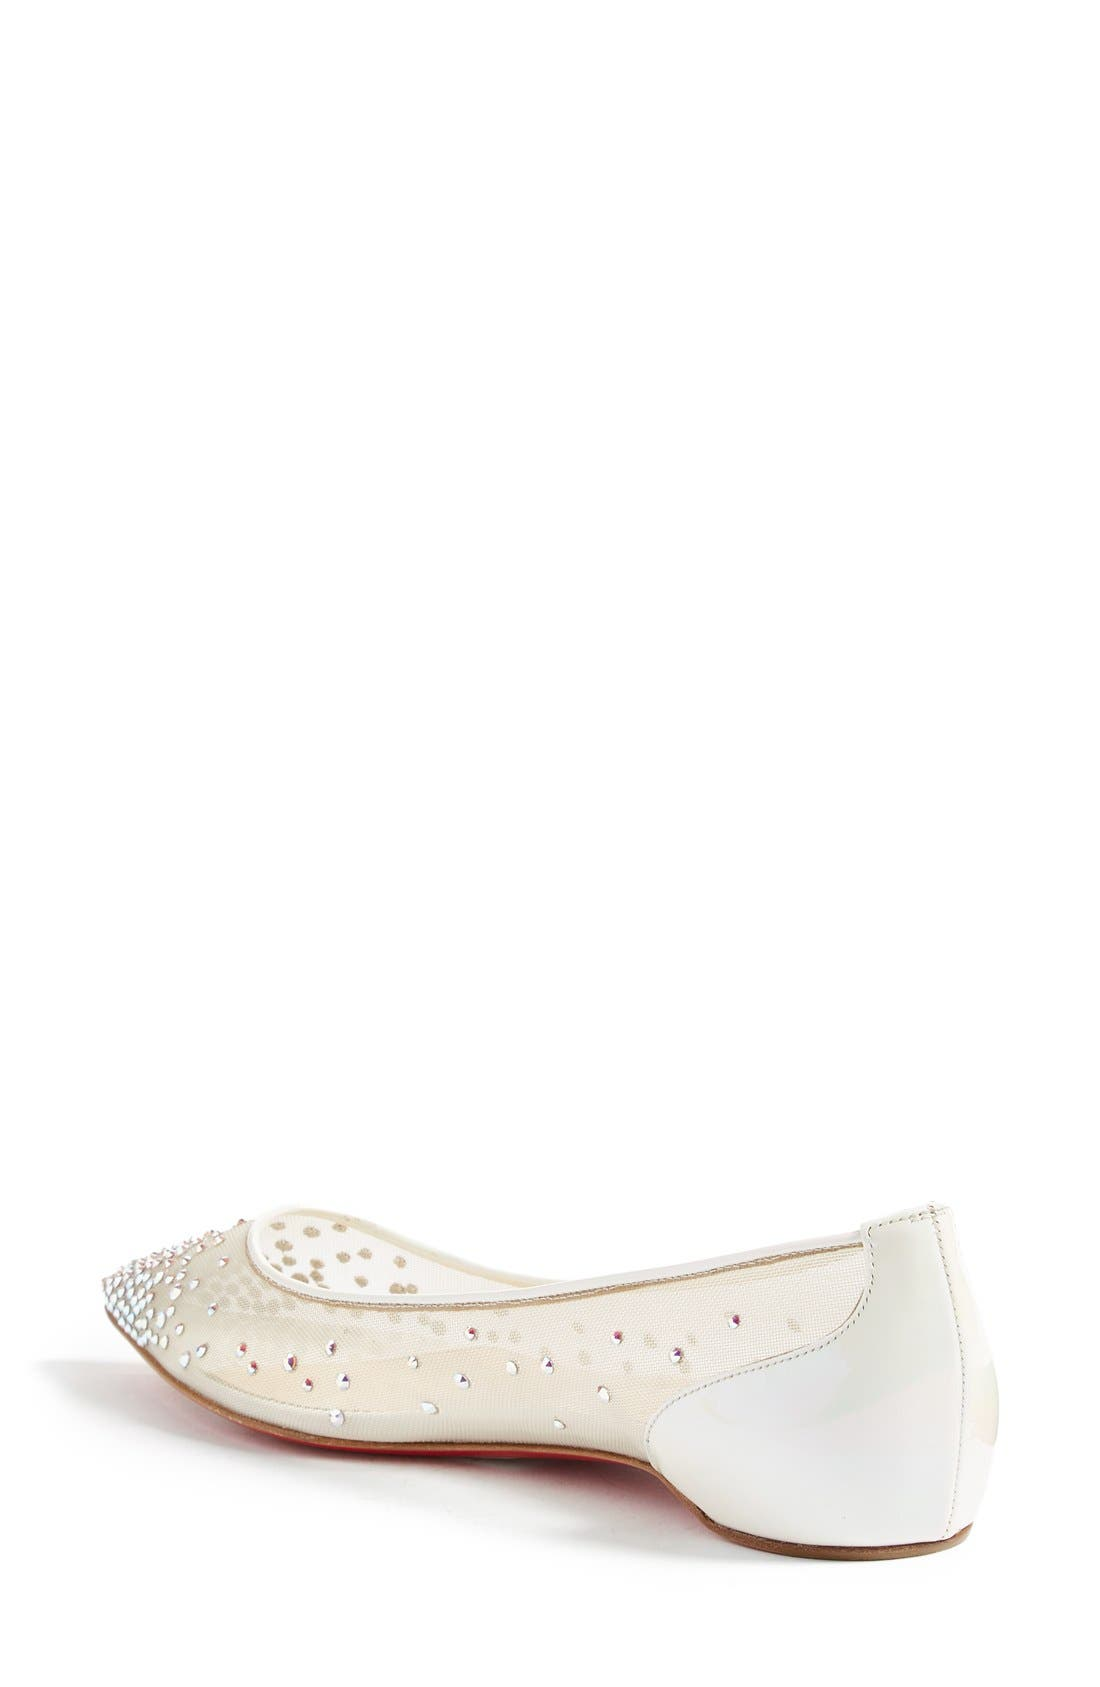 Follies Strass Pointy Toe Flat,                             Alternate thumbnail 2, color,                             White